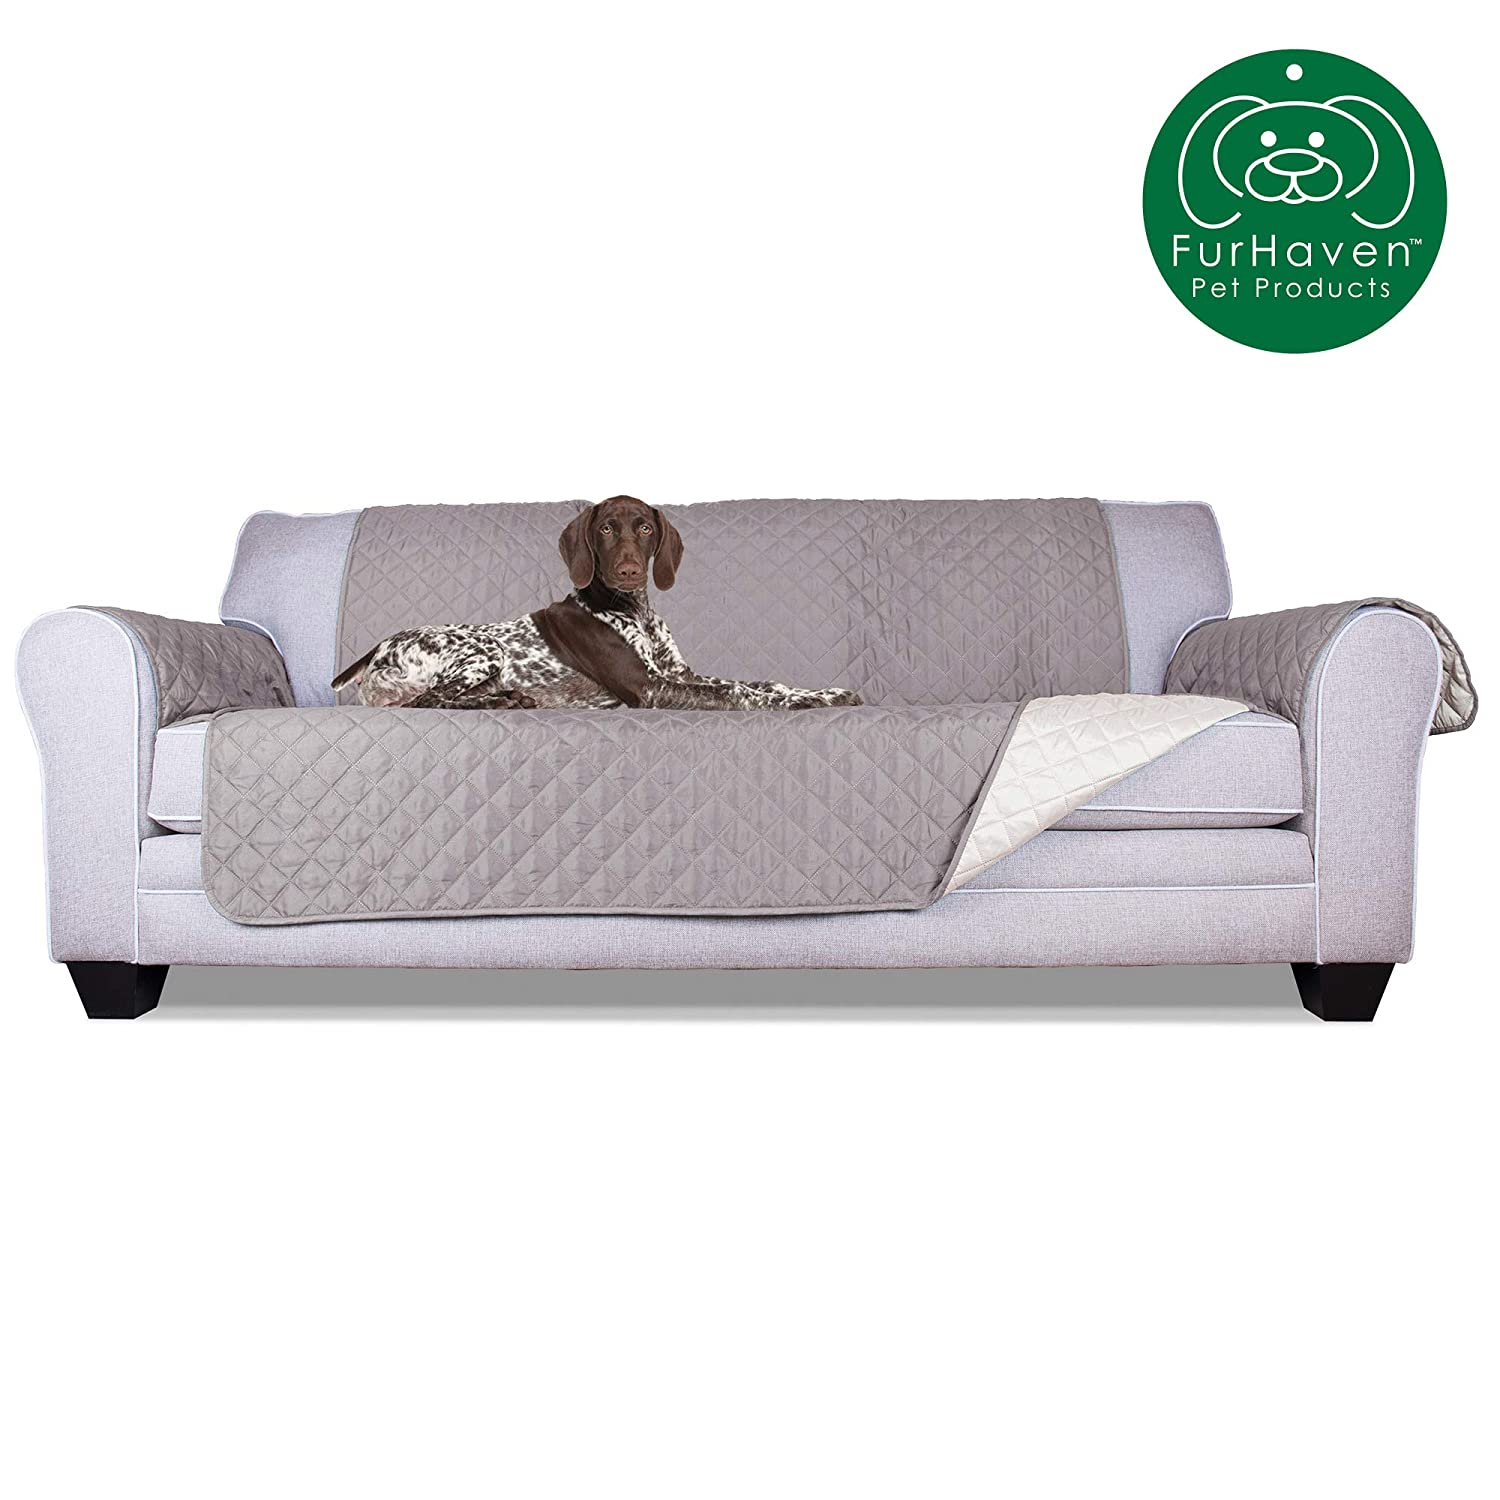 Magnificent Furhaven Pet Furniture Cover Two Tone Reversible Water Resistant Quilted Living Room Furniture Cover Protector Pet Bed For Dogs Cats Available Machost Co Dining Chair Design Ideas Machostcouk